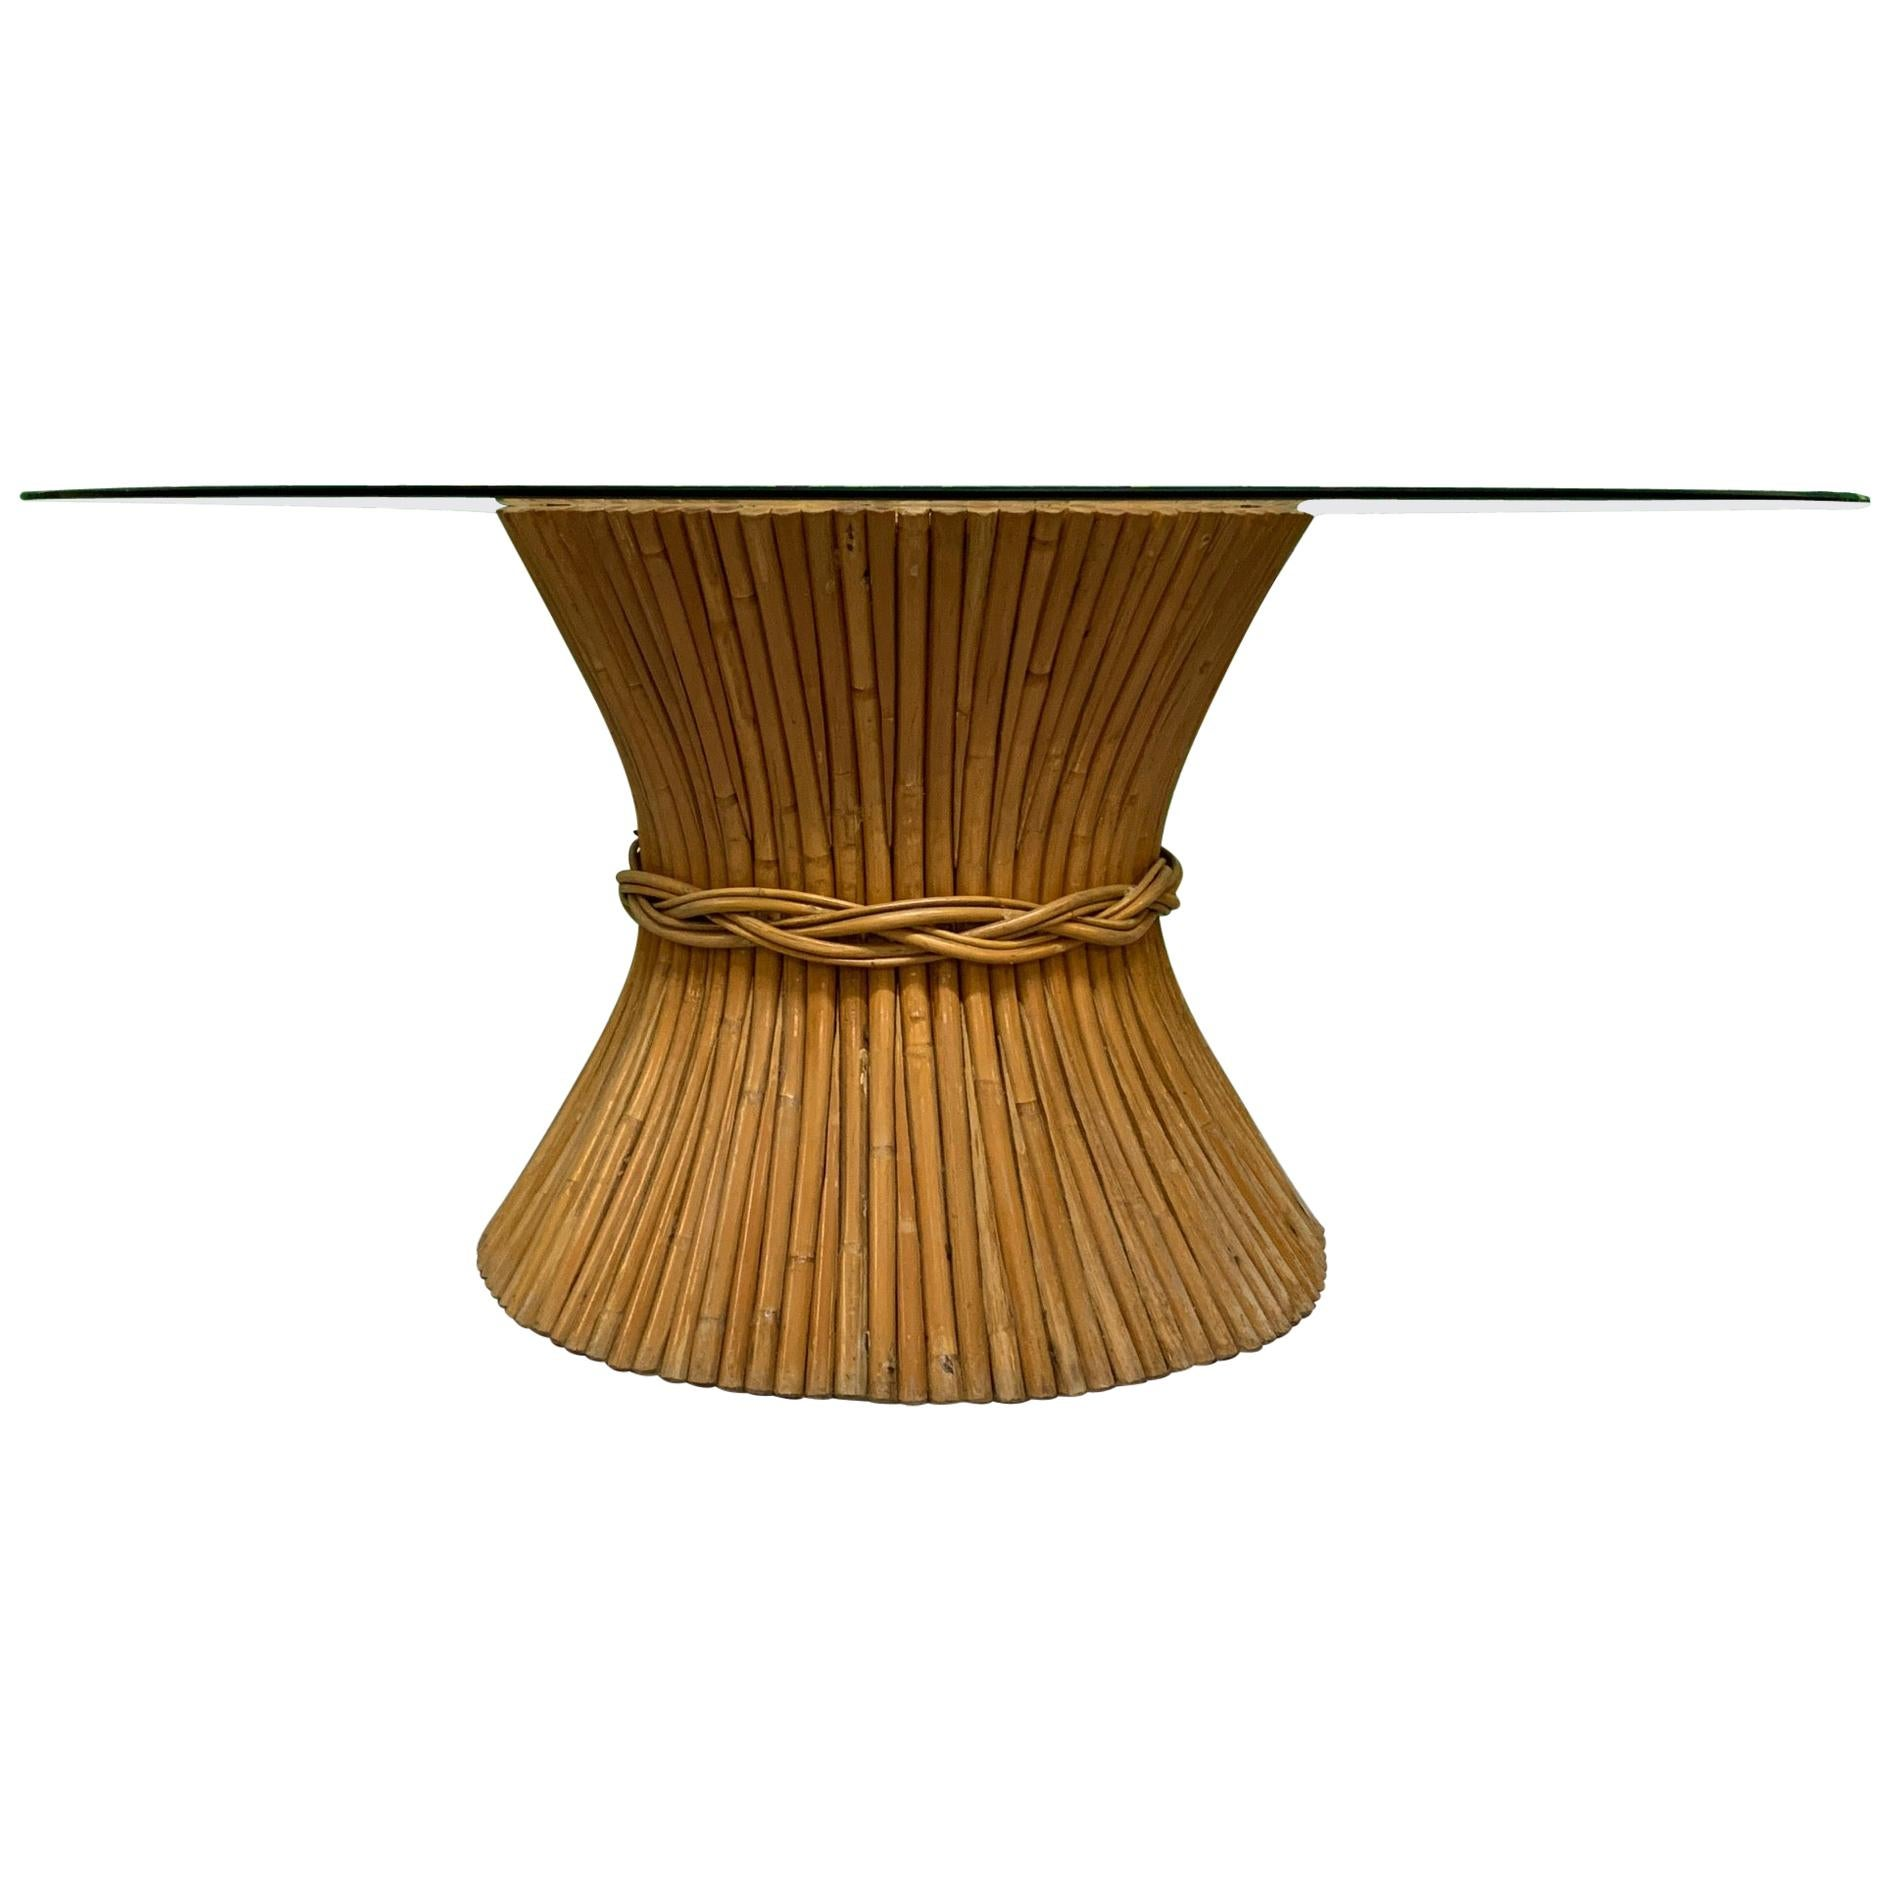 Vintage Rattan Sheaf of Wheat Dining Table by McGuire